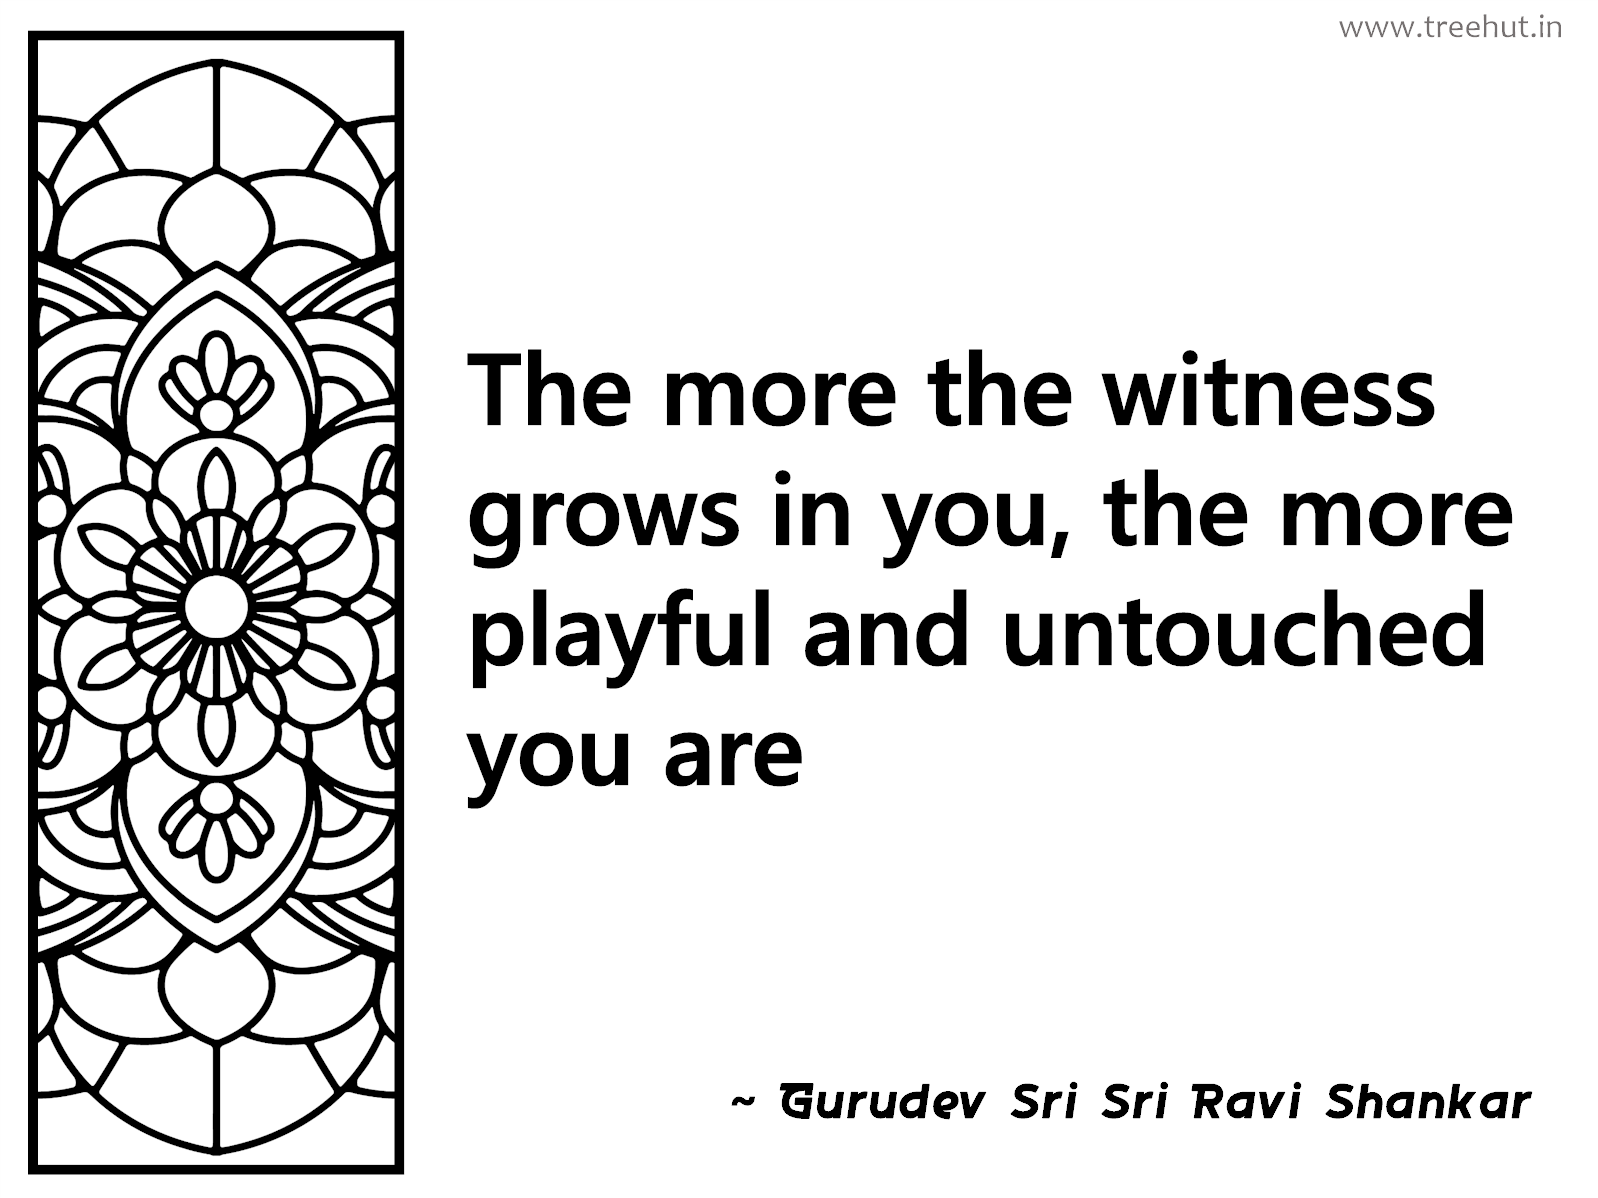 The more the witness grows in you, the more playful and untouched you are Inspirational Quote by Gurudev Sri Sri Ravi Shankar, coloring pages